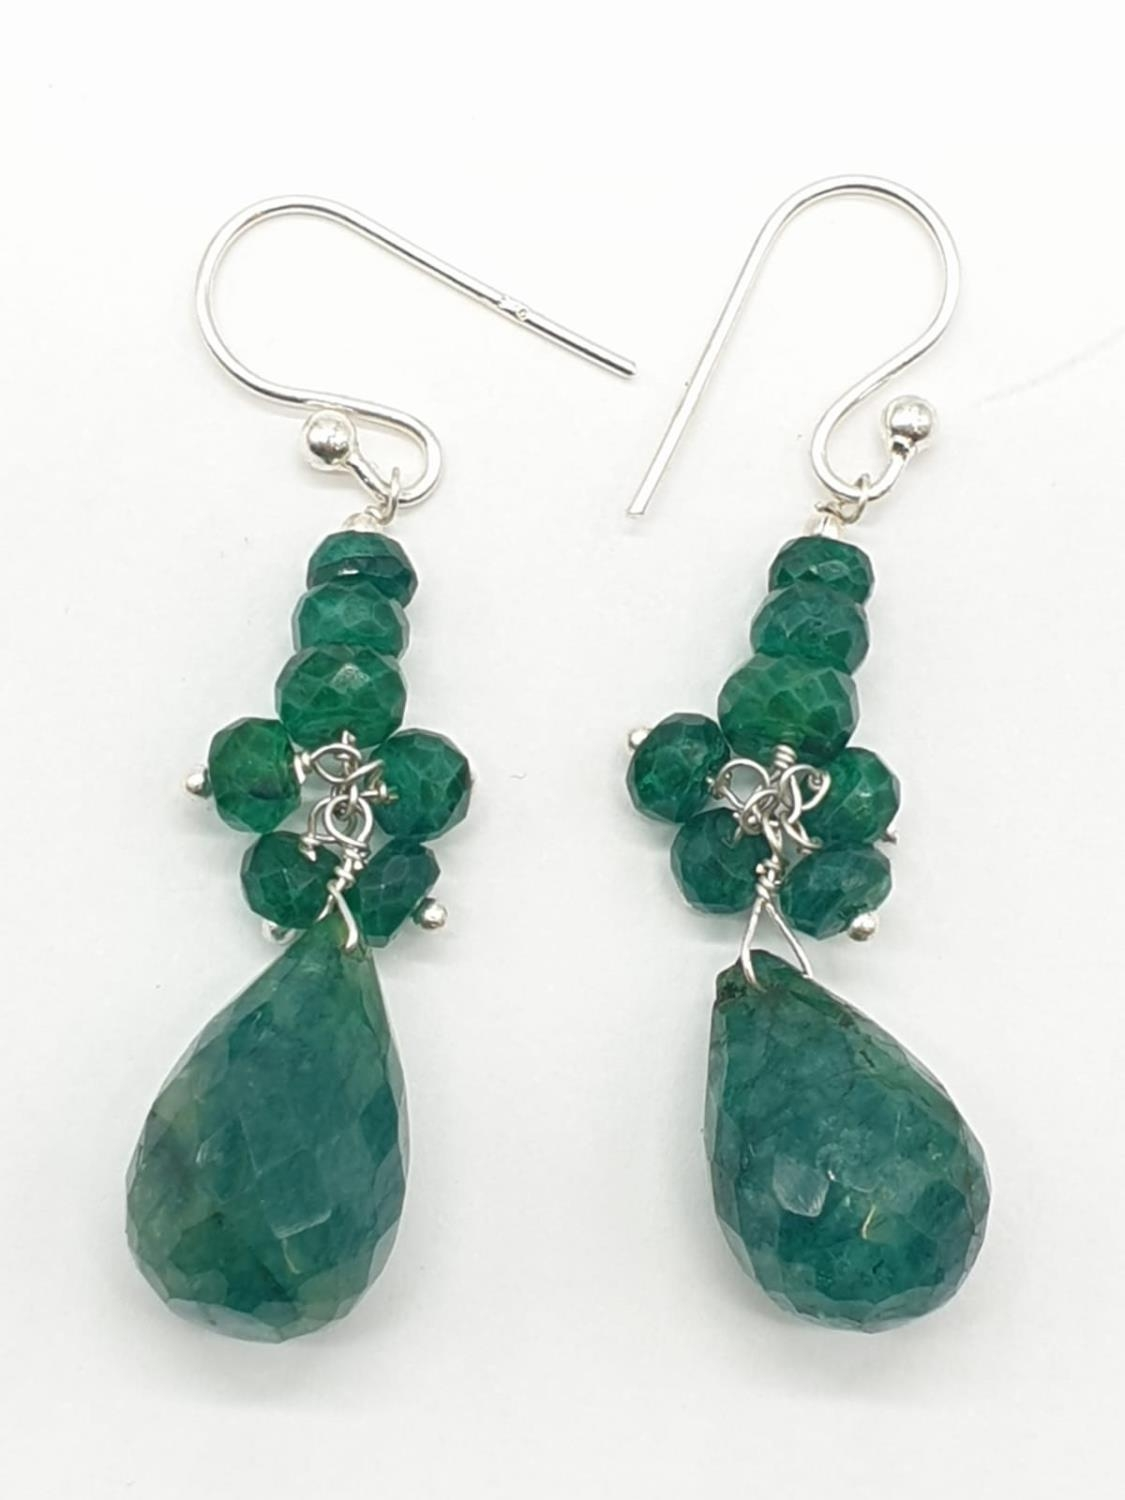 A Emerald Drops Necklace With Matching Dangler Earrings - Image 2 of 4